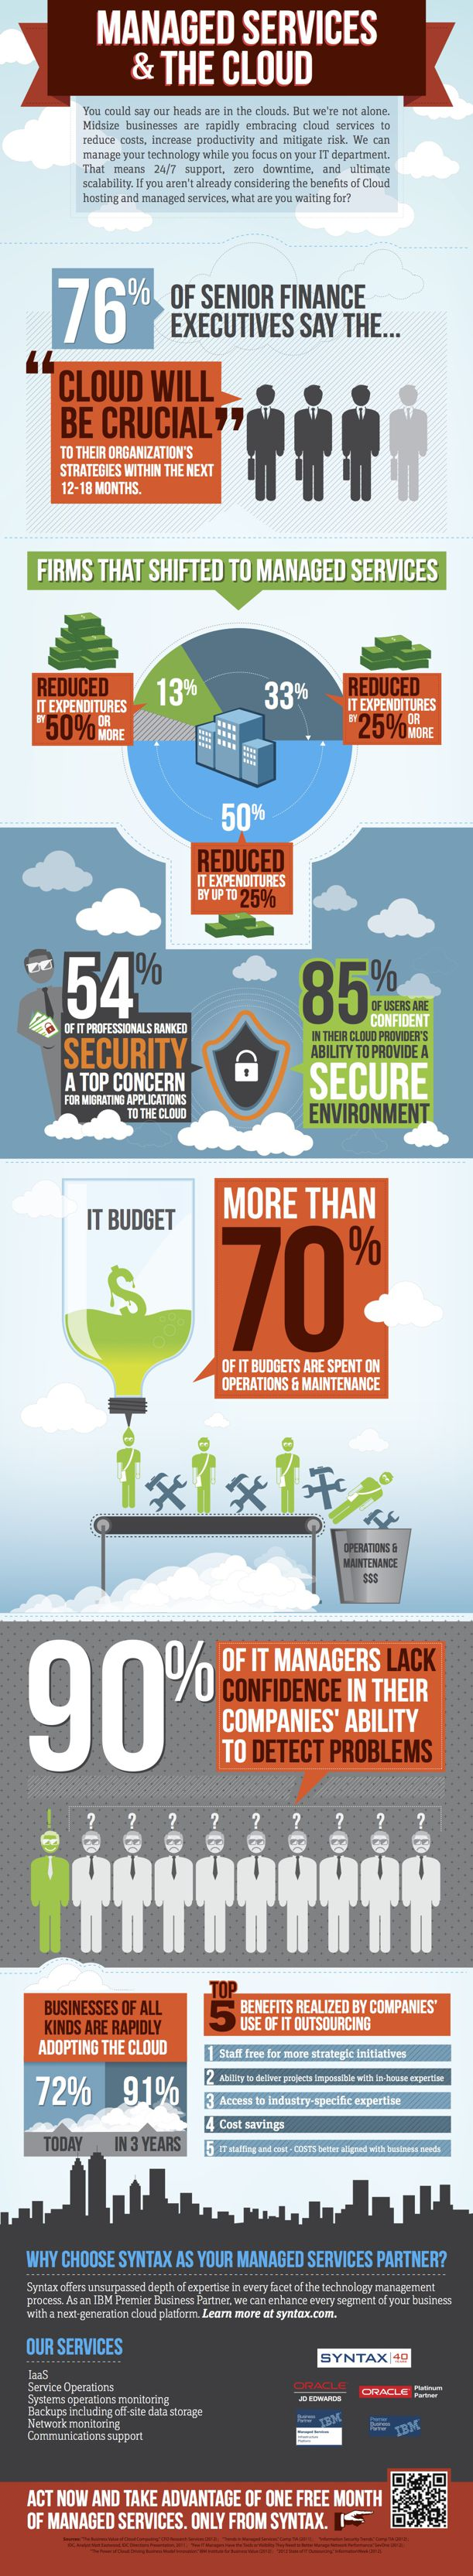 Cloud Infographic: Managed Services & The Cloud | CloudTweaks